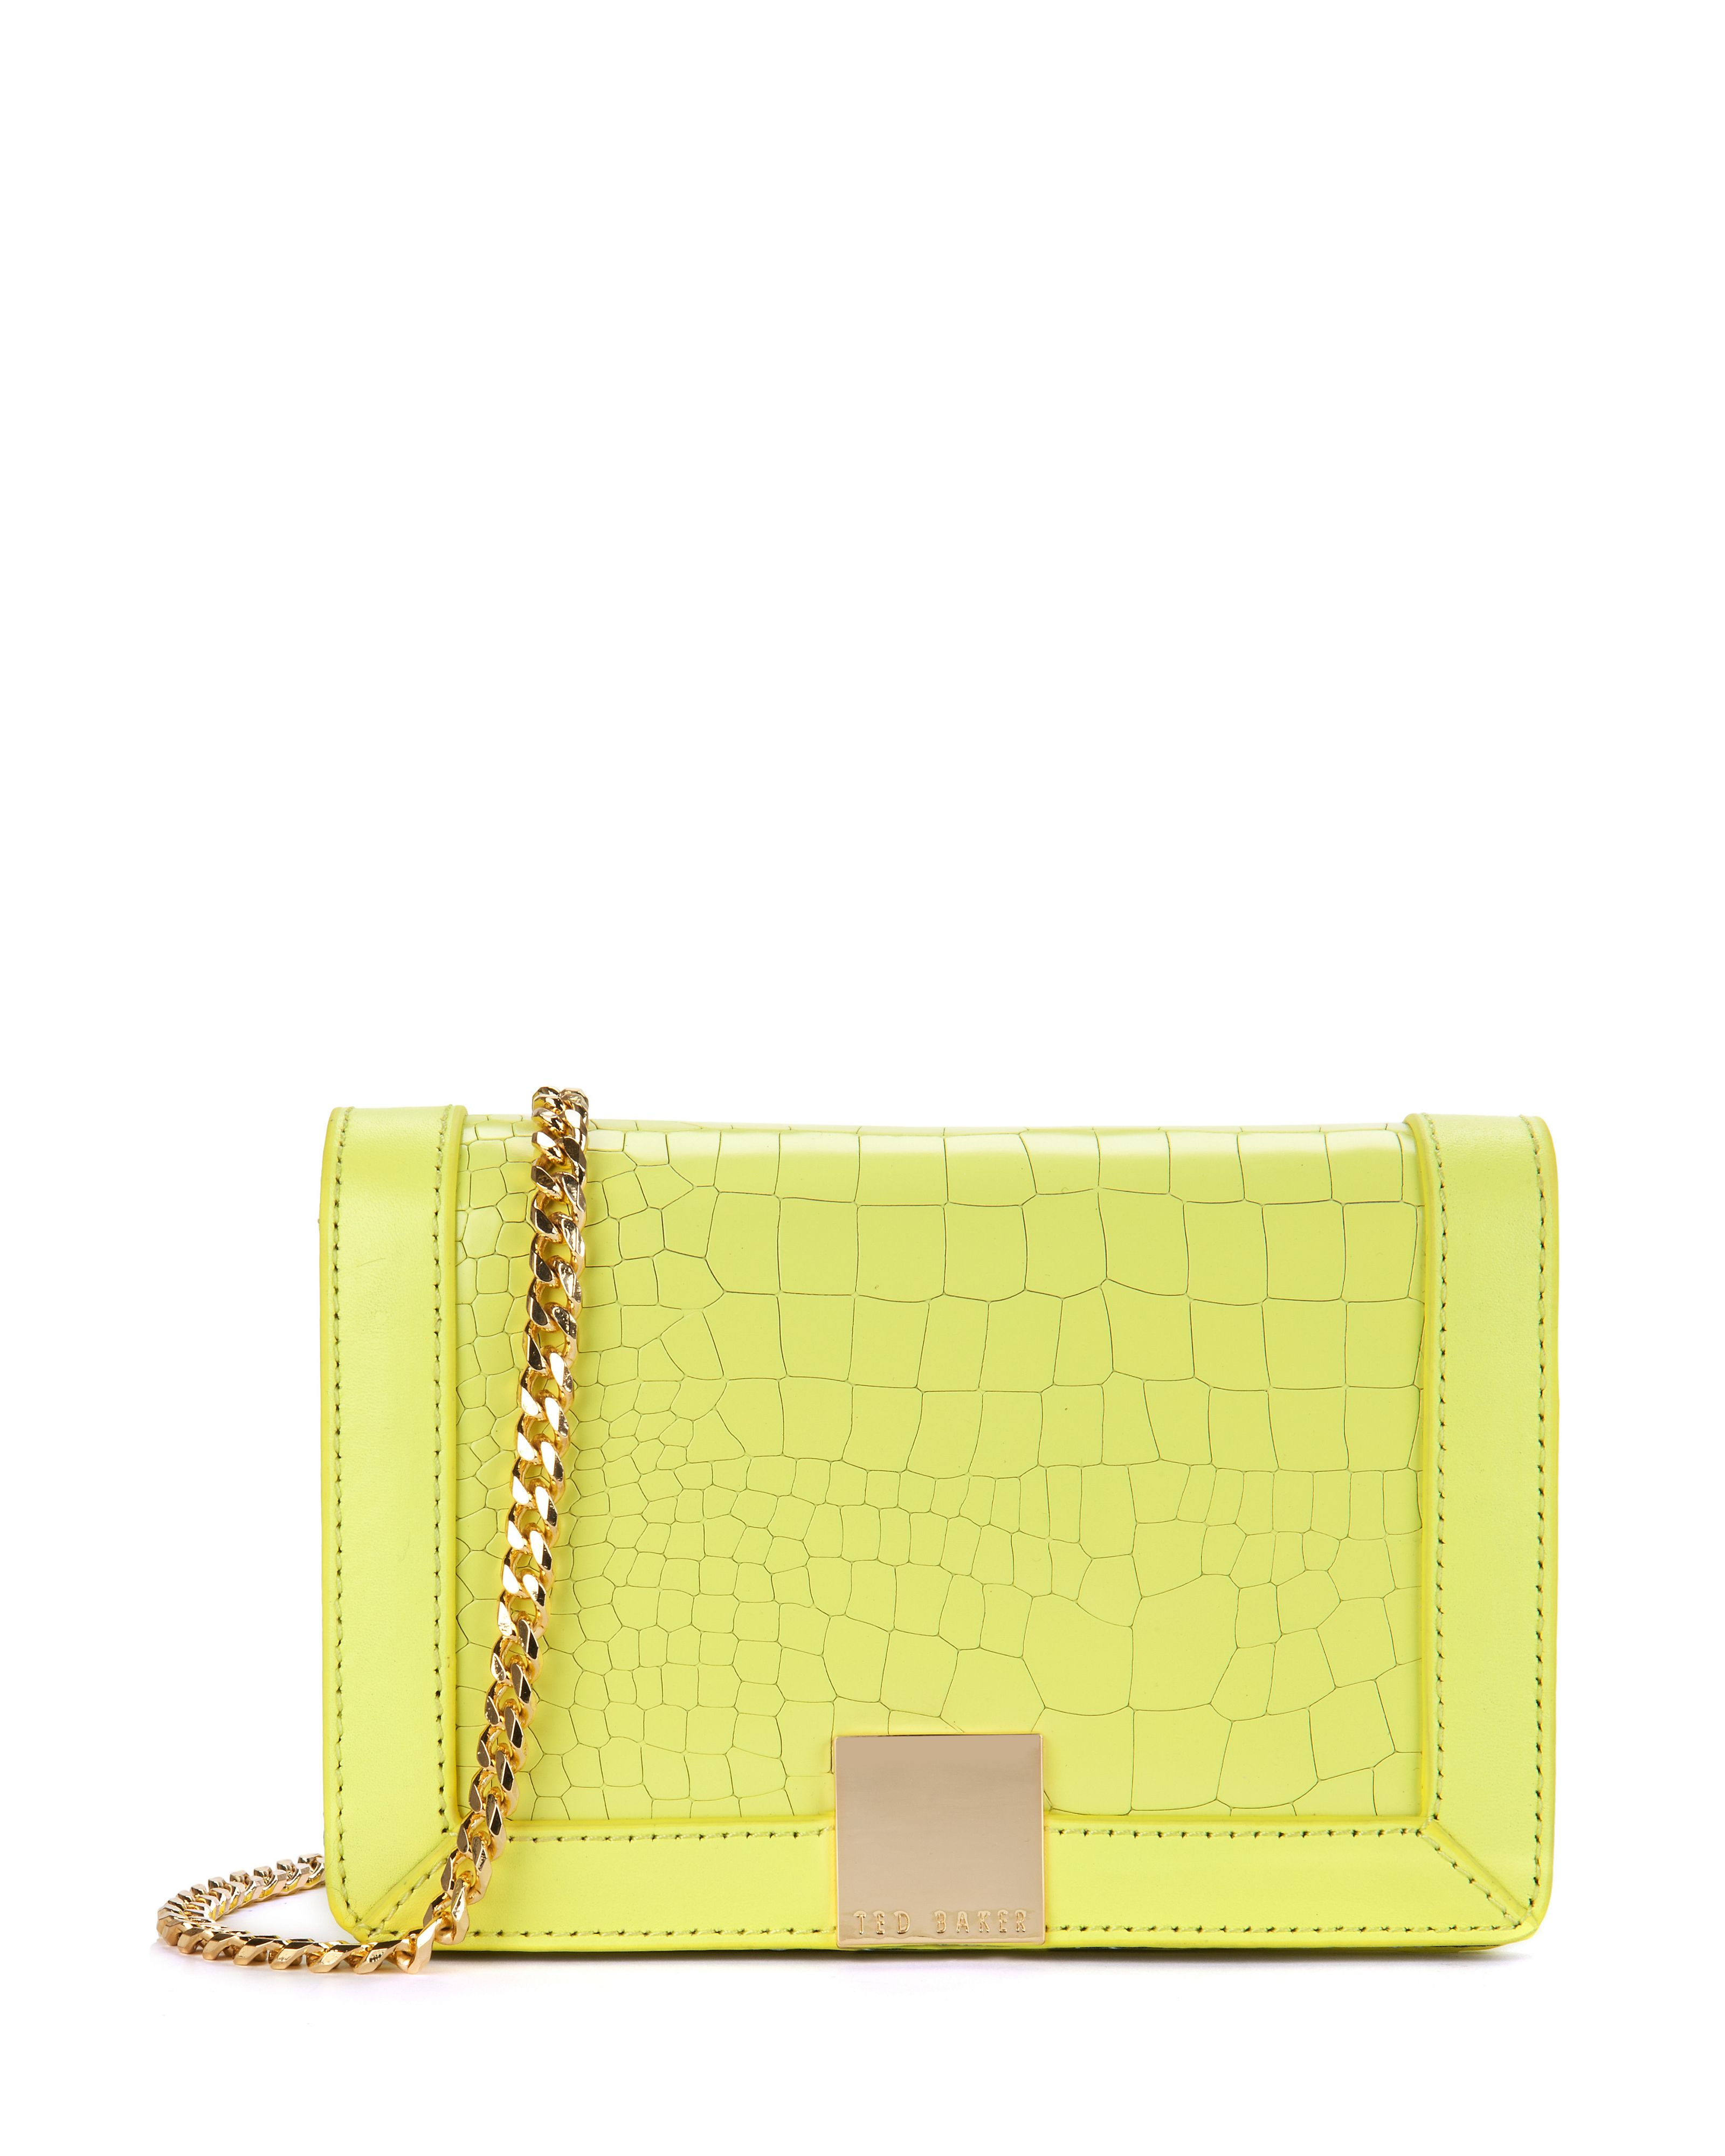 Ruelles mini exotic clutch bag